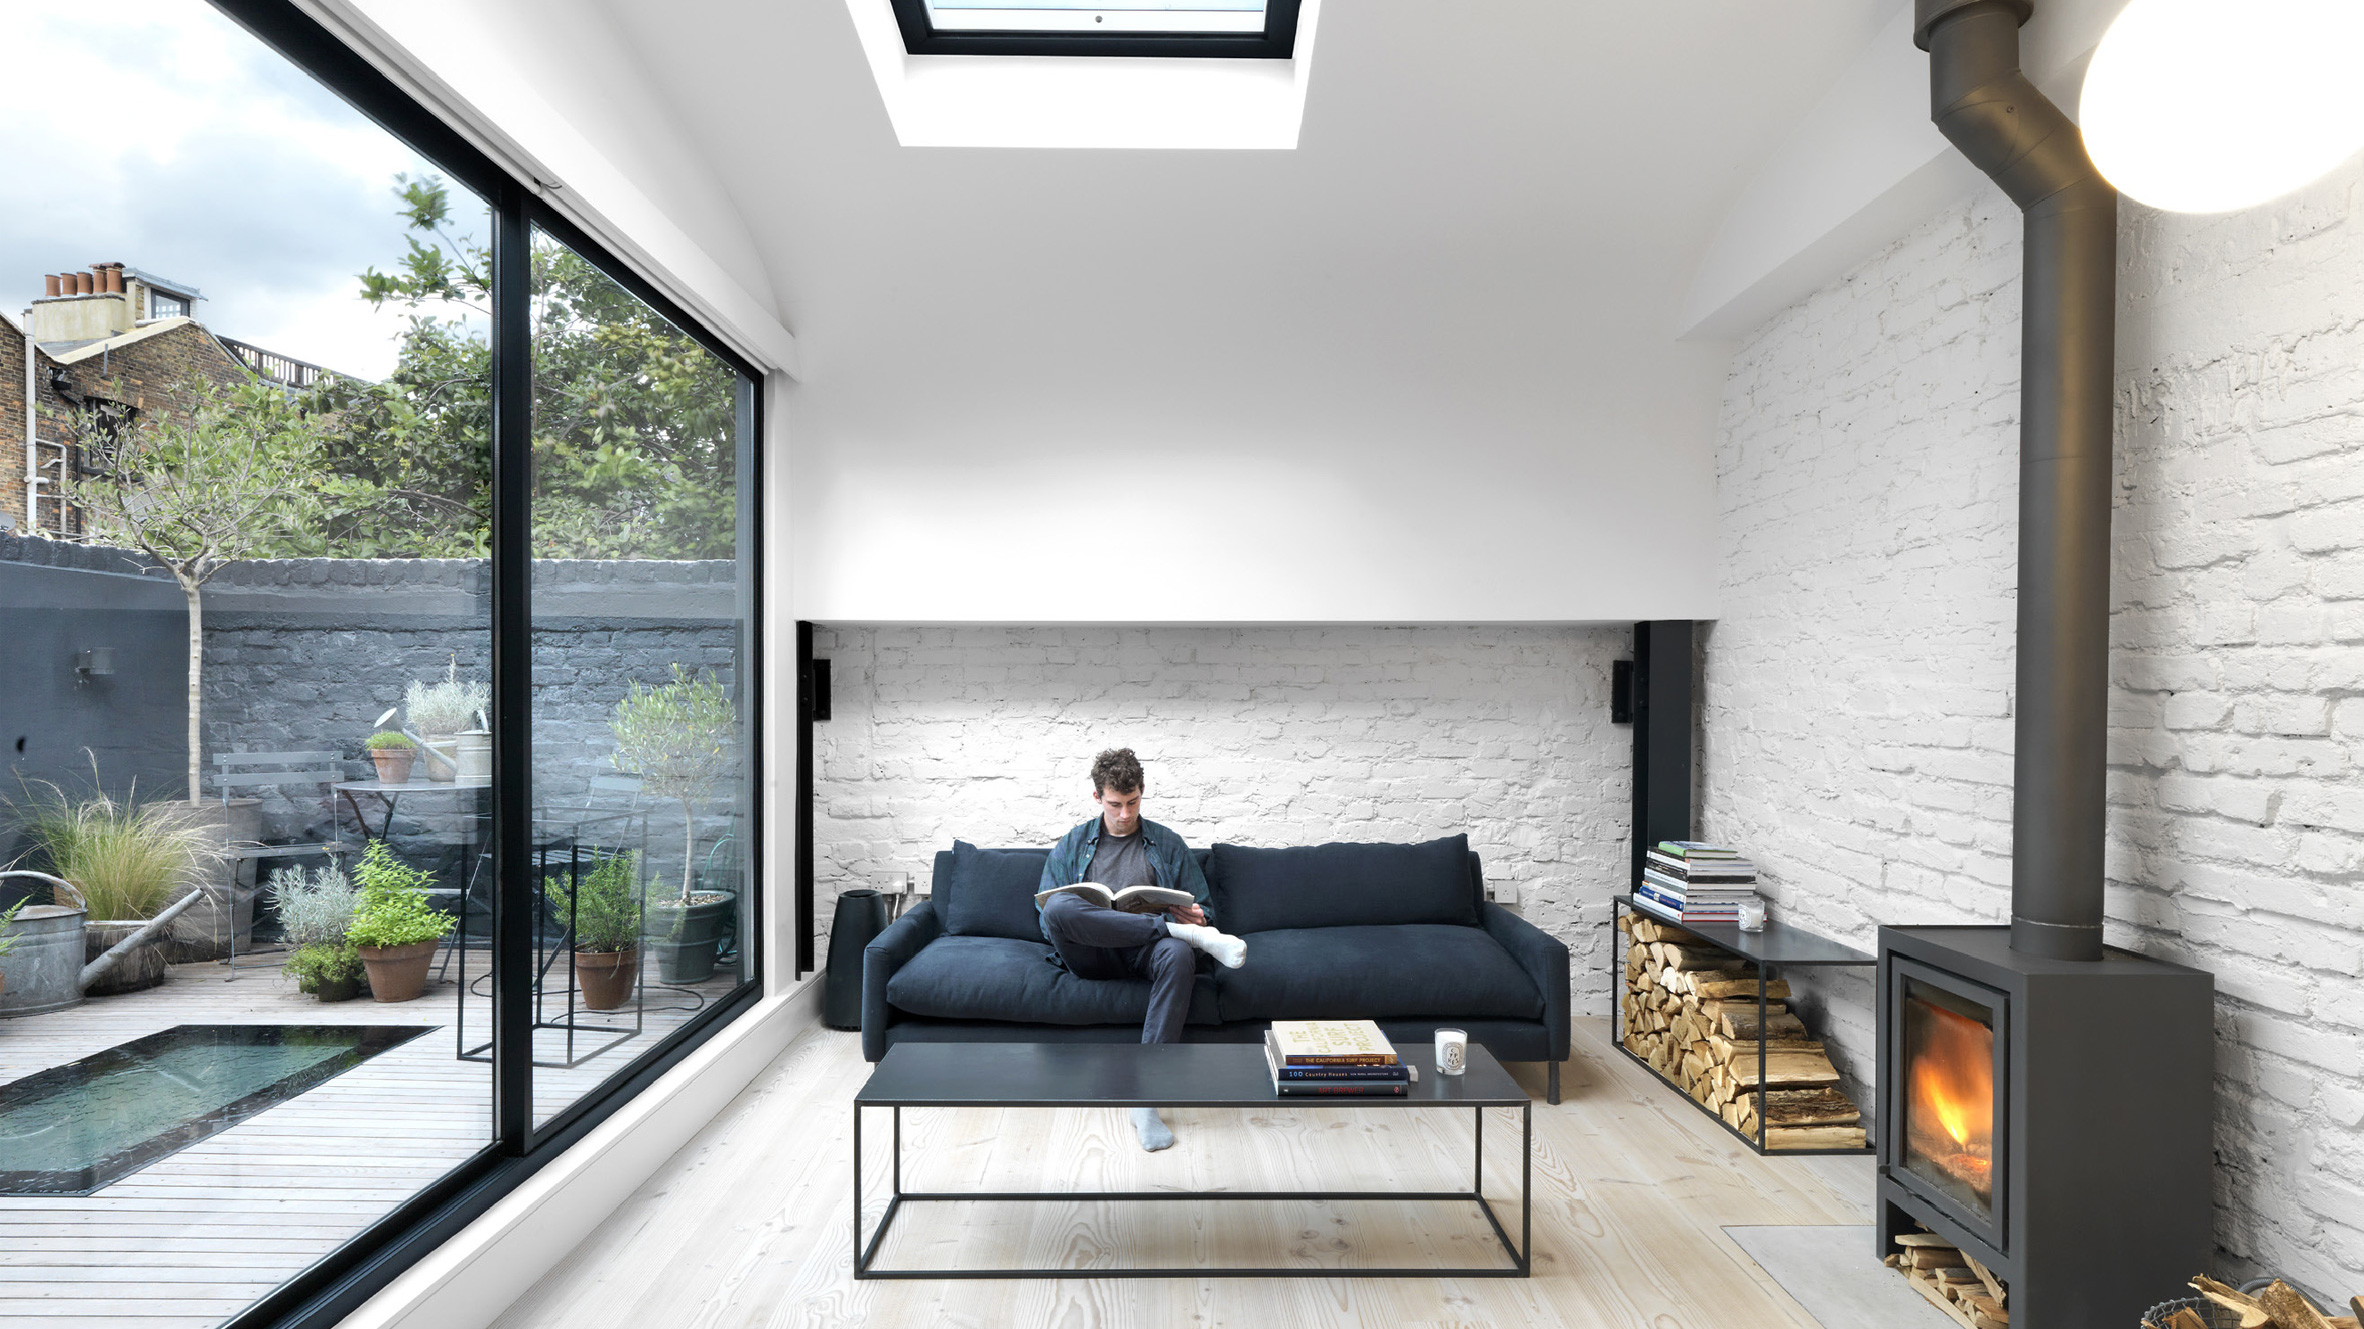 Monochrome architecture design and interiors | Dezeen